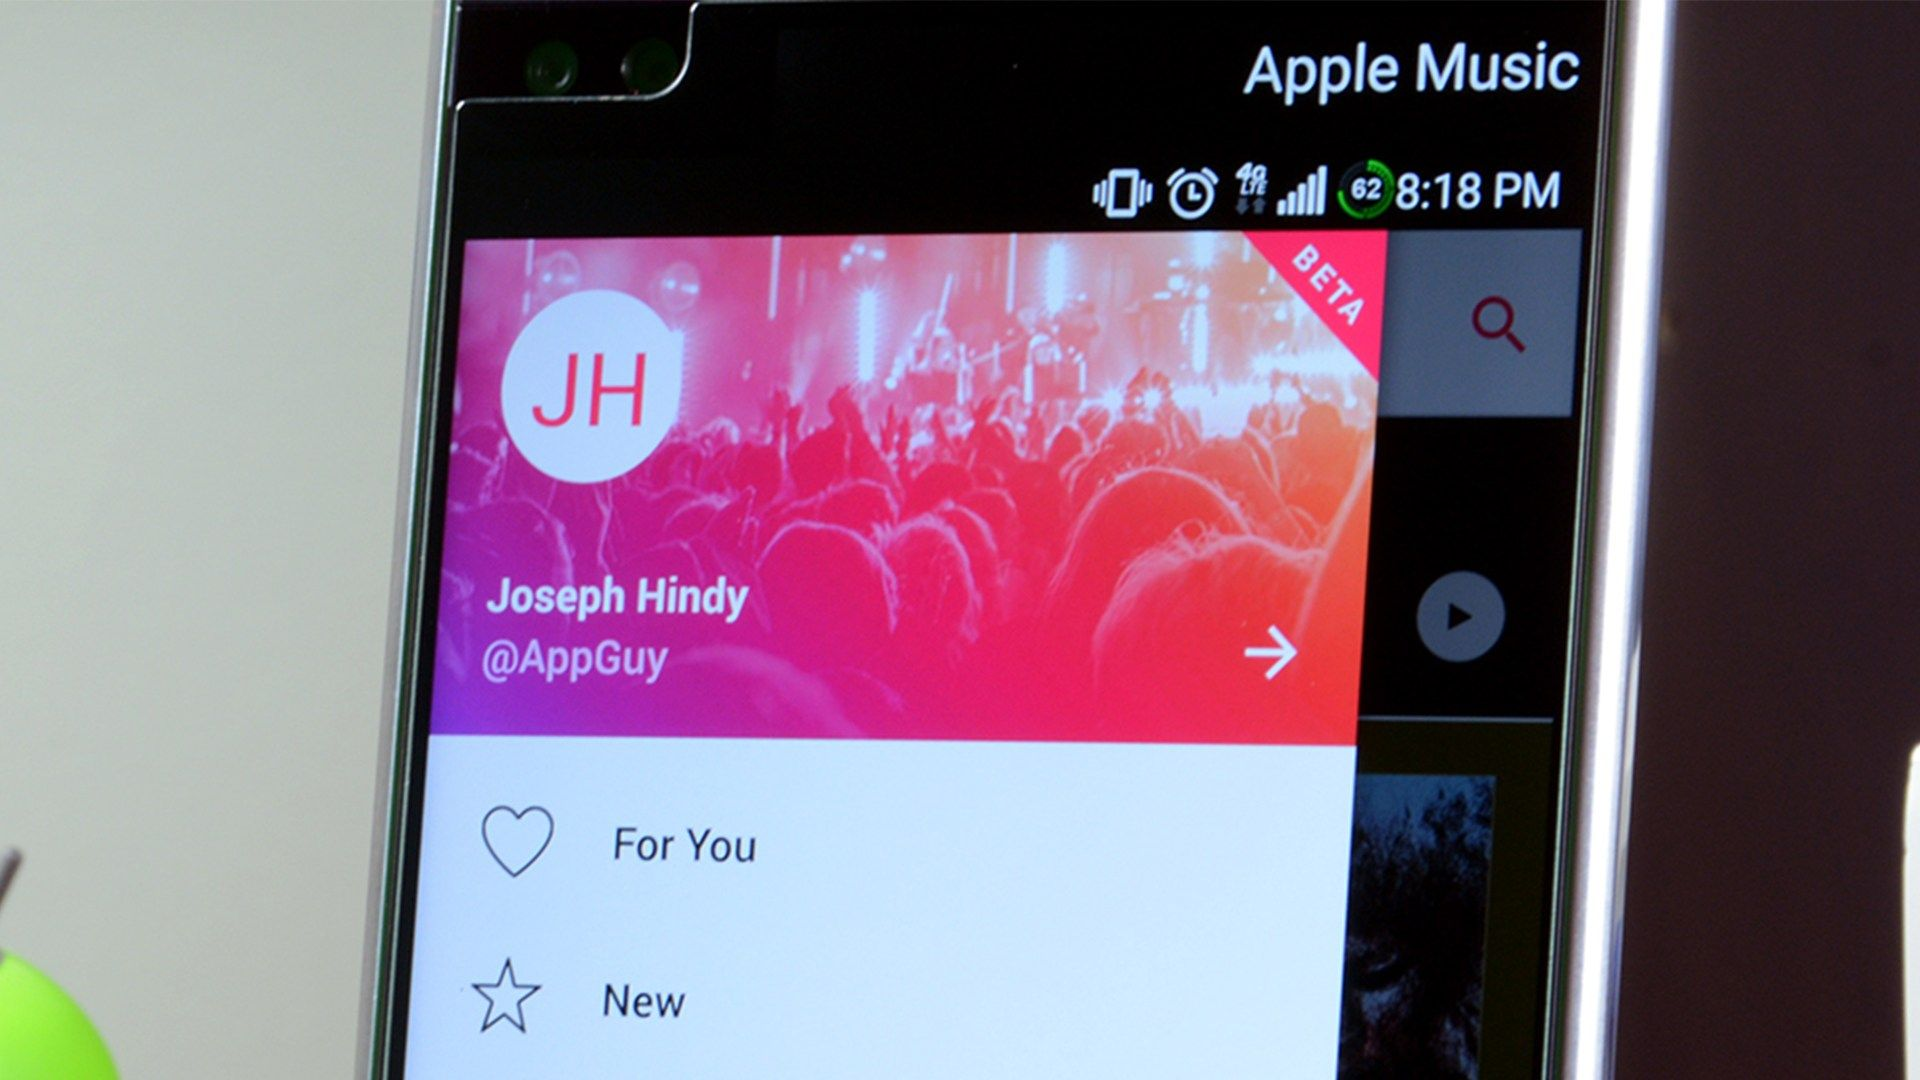 Spotify Lite is lightweight, but probably too barebones